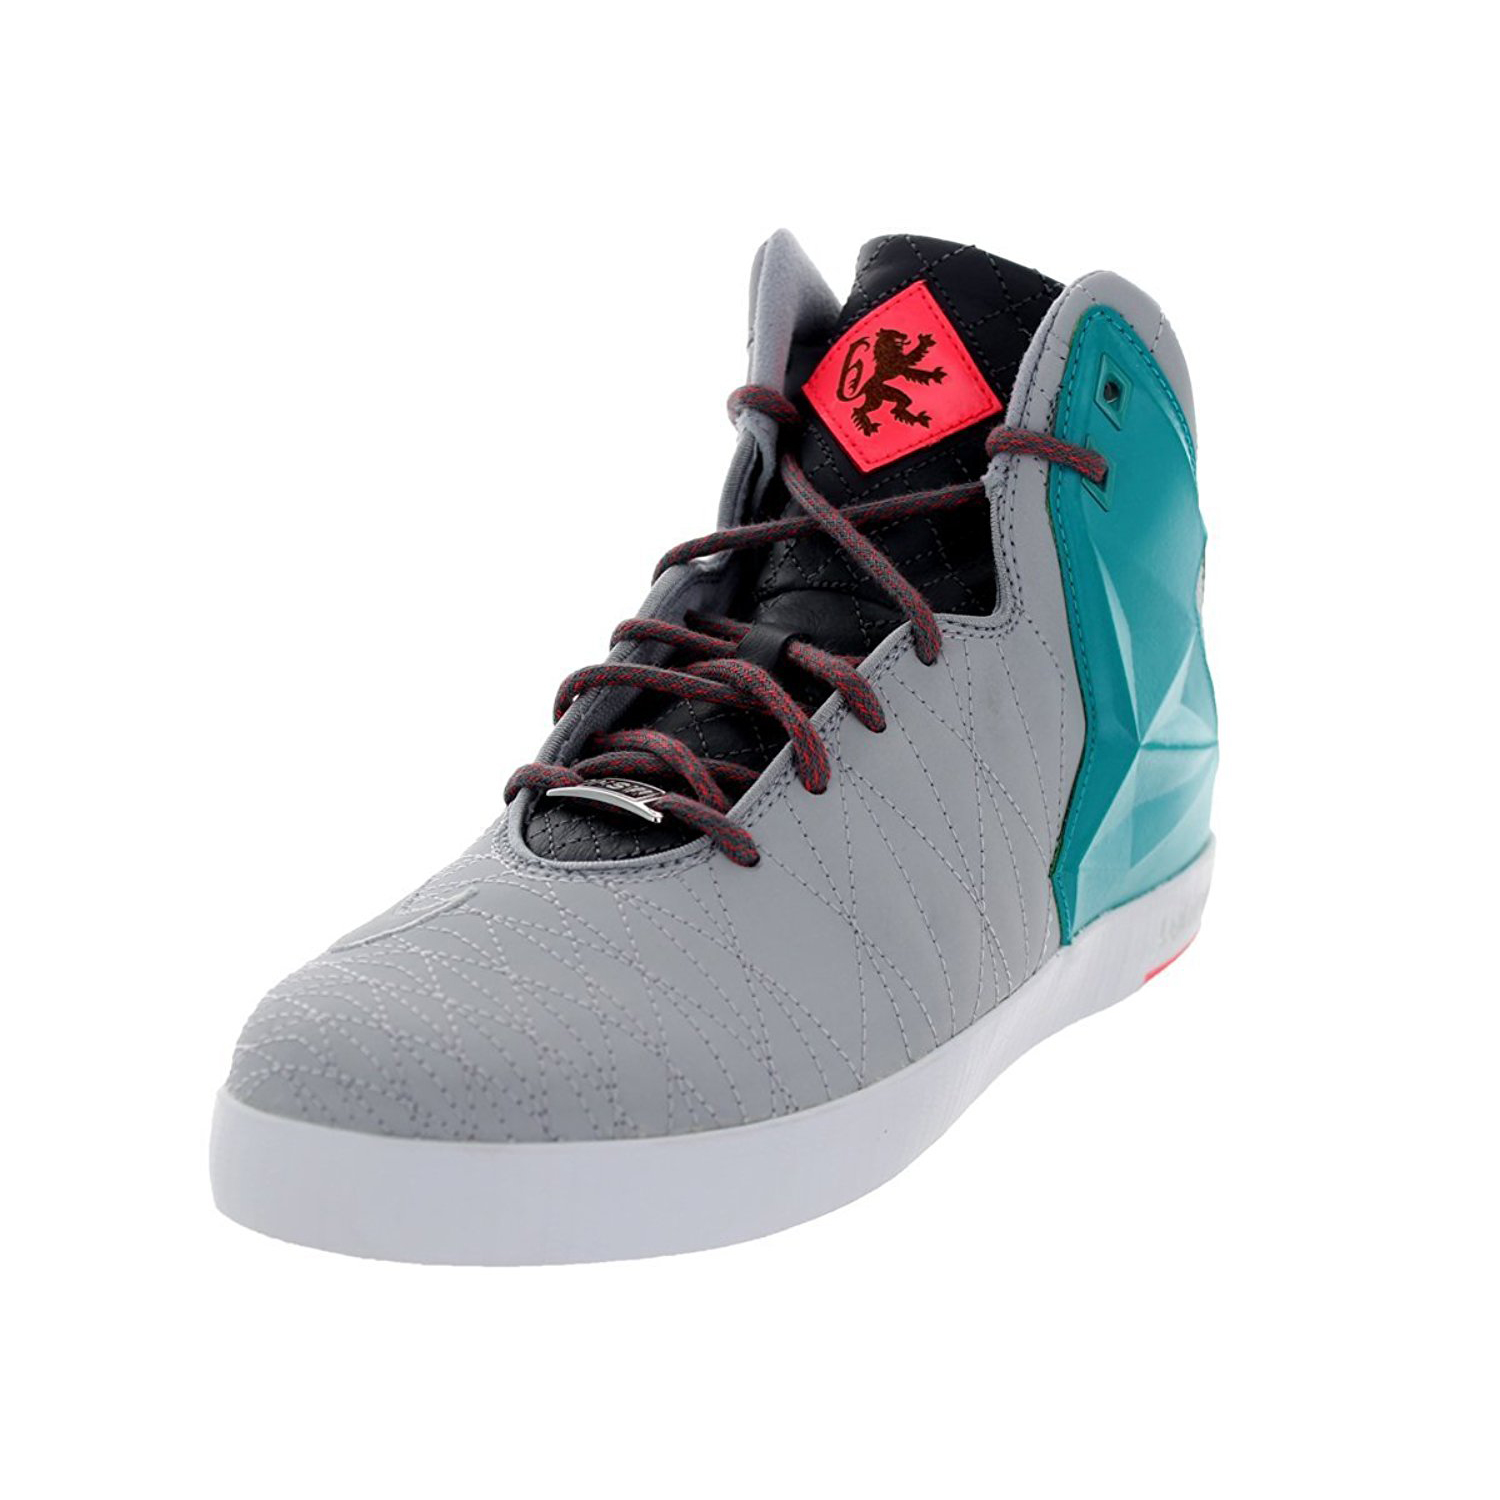 050028afc392 Details about NIKE Men s Grey Lebron XI NSW Lifestyle Sneakers 616766  130  NWOB